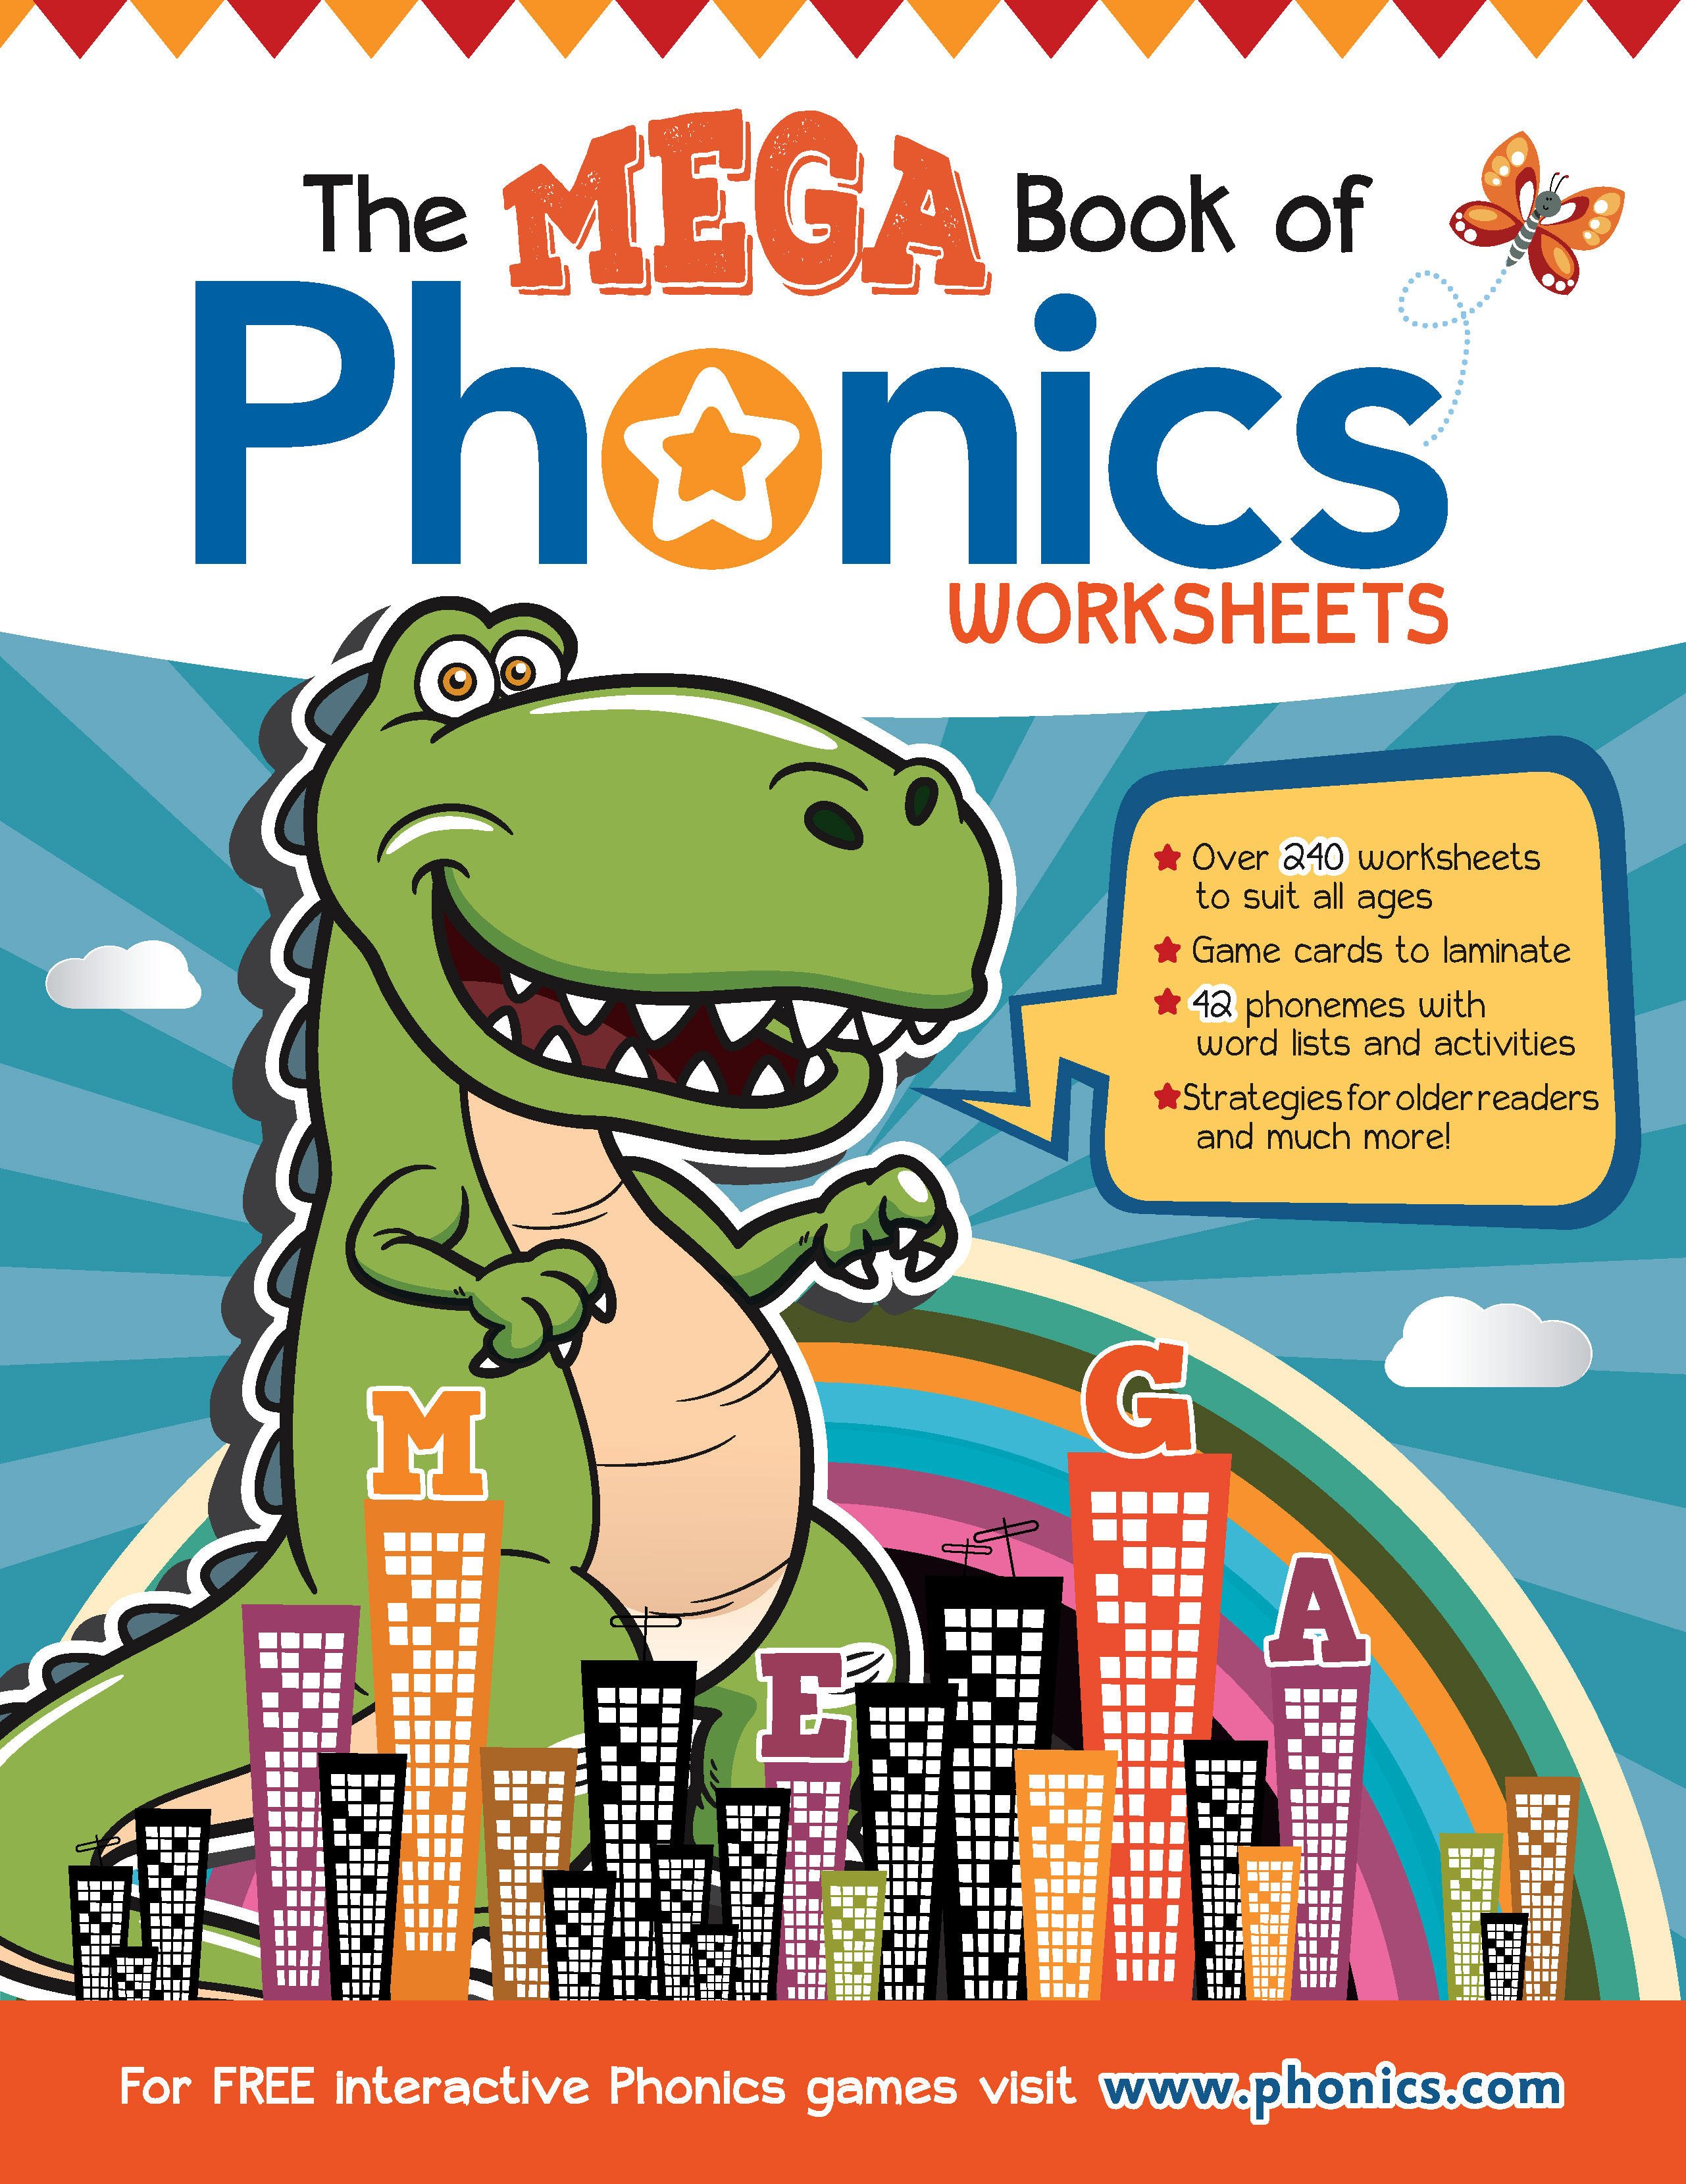 The Mega Book of Phonics Worksheets - Phonics.com